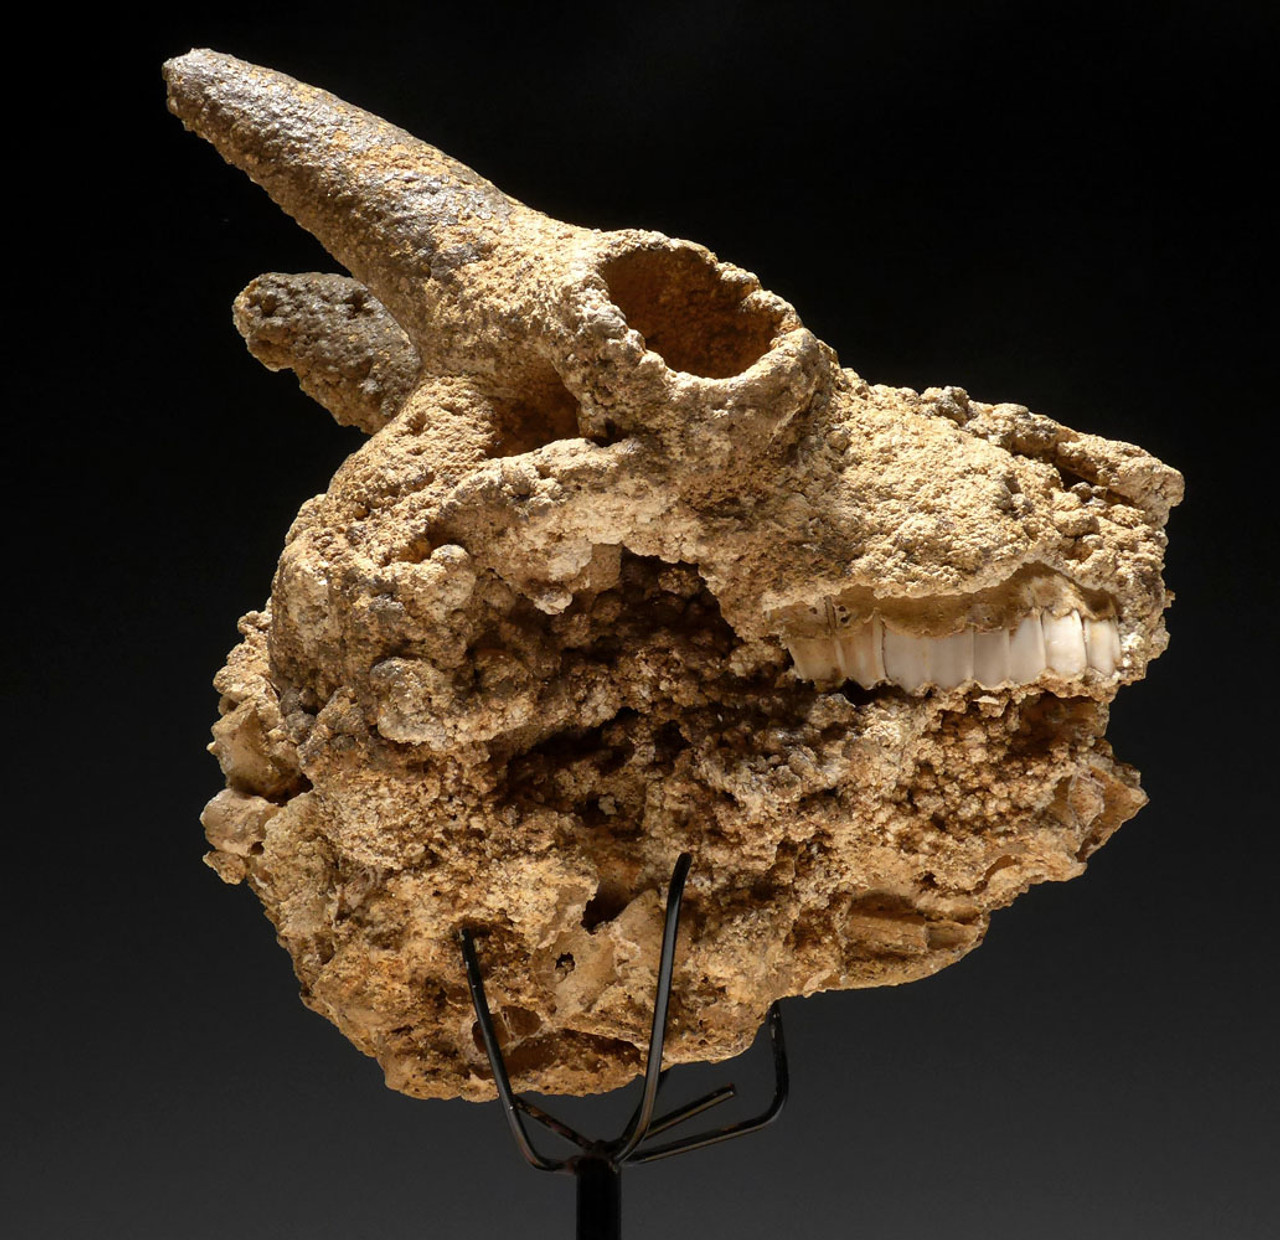 "ULTRA-RARE FOSSIL IBEX FOSSIL SKULL FOUND IN A CAVE COVERED IN CAVE PEARLS ""THE SLEEPING IBEX"" *F46"